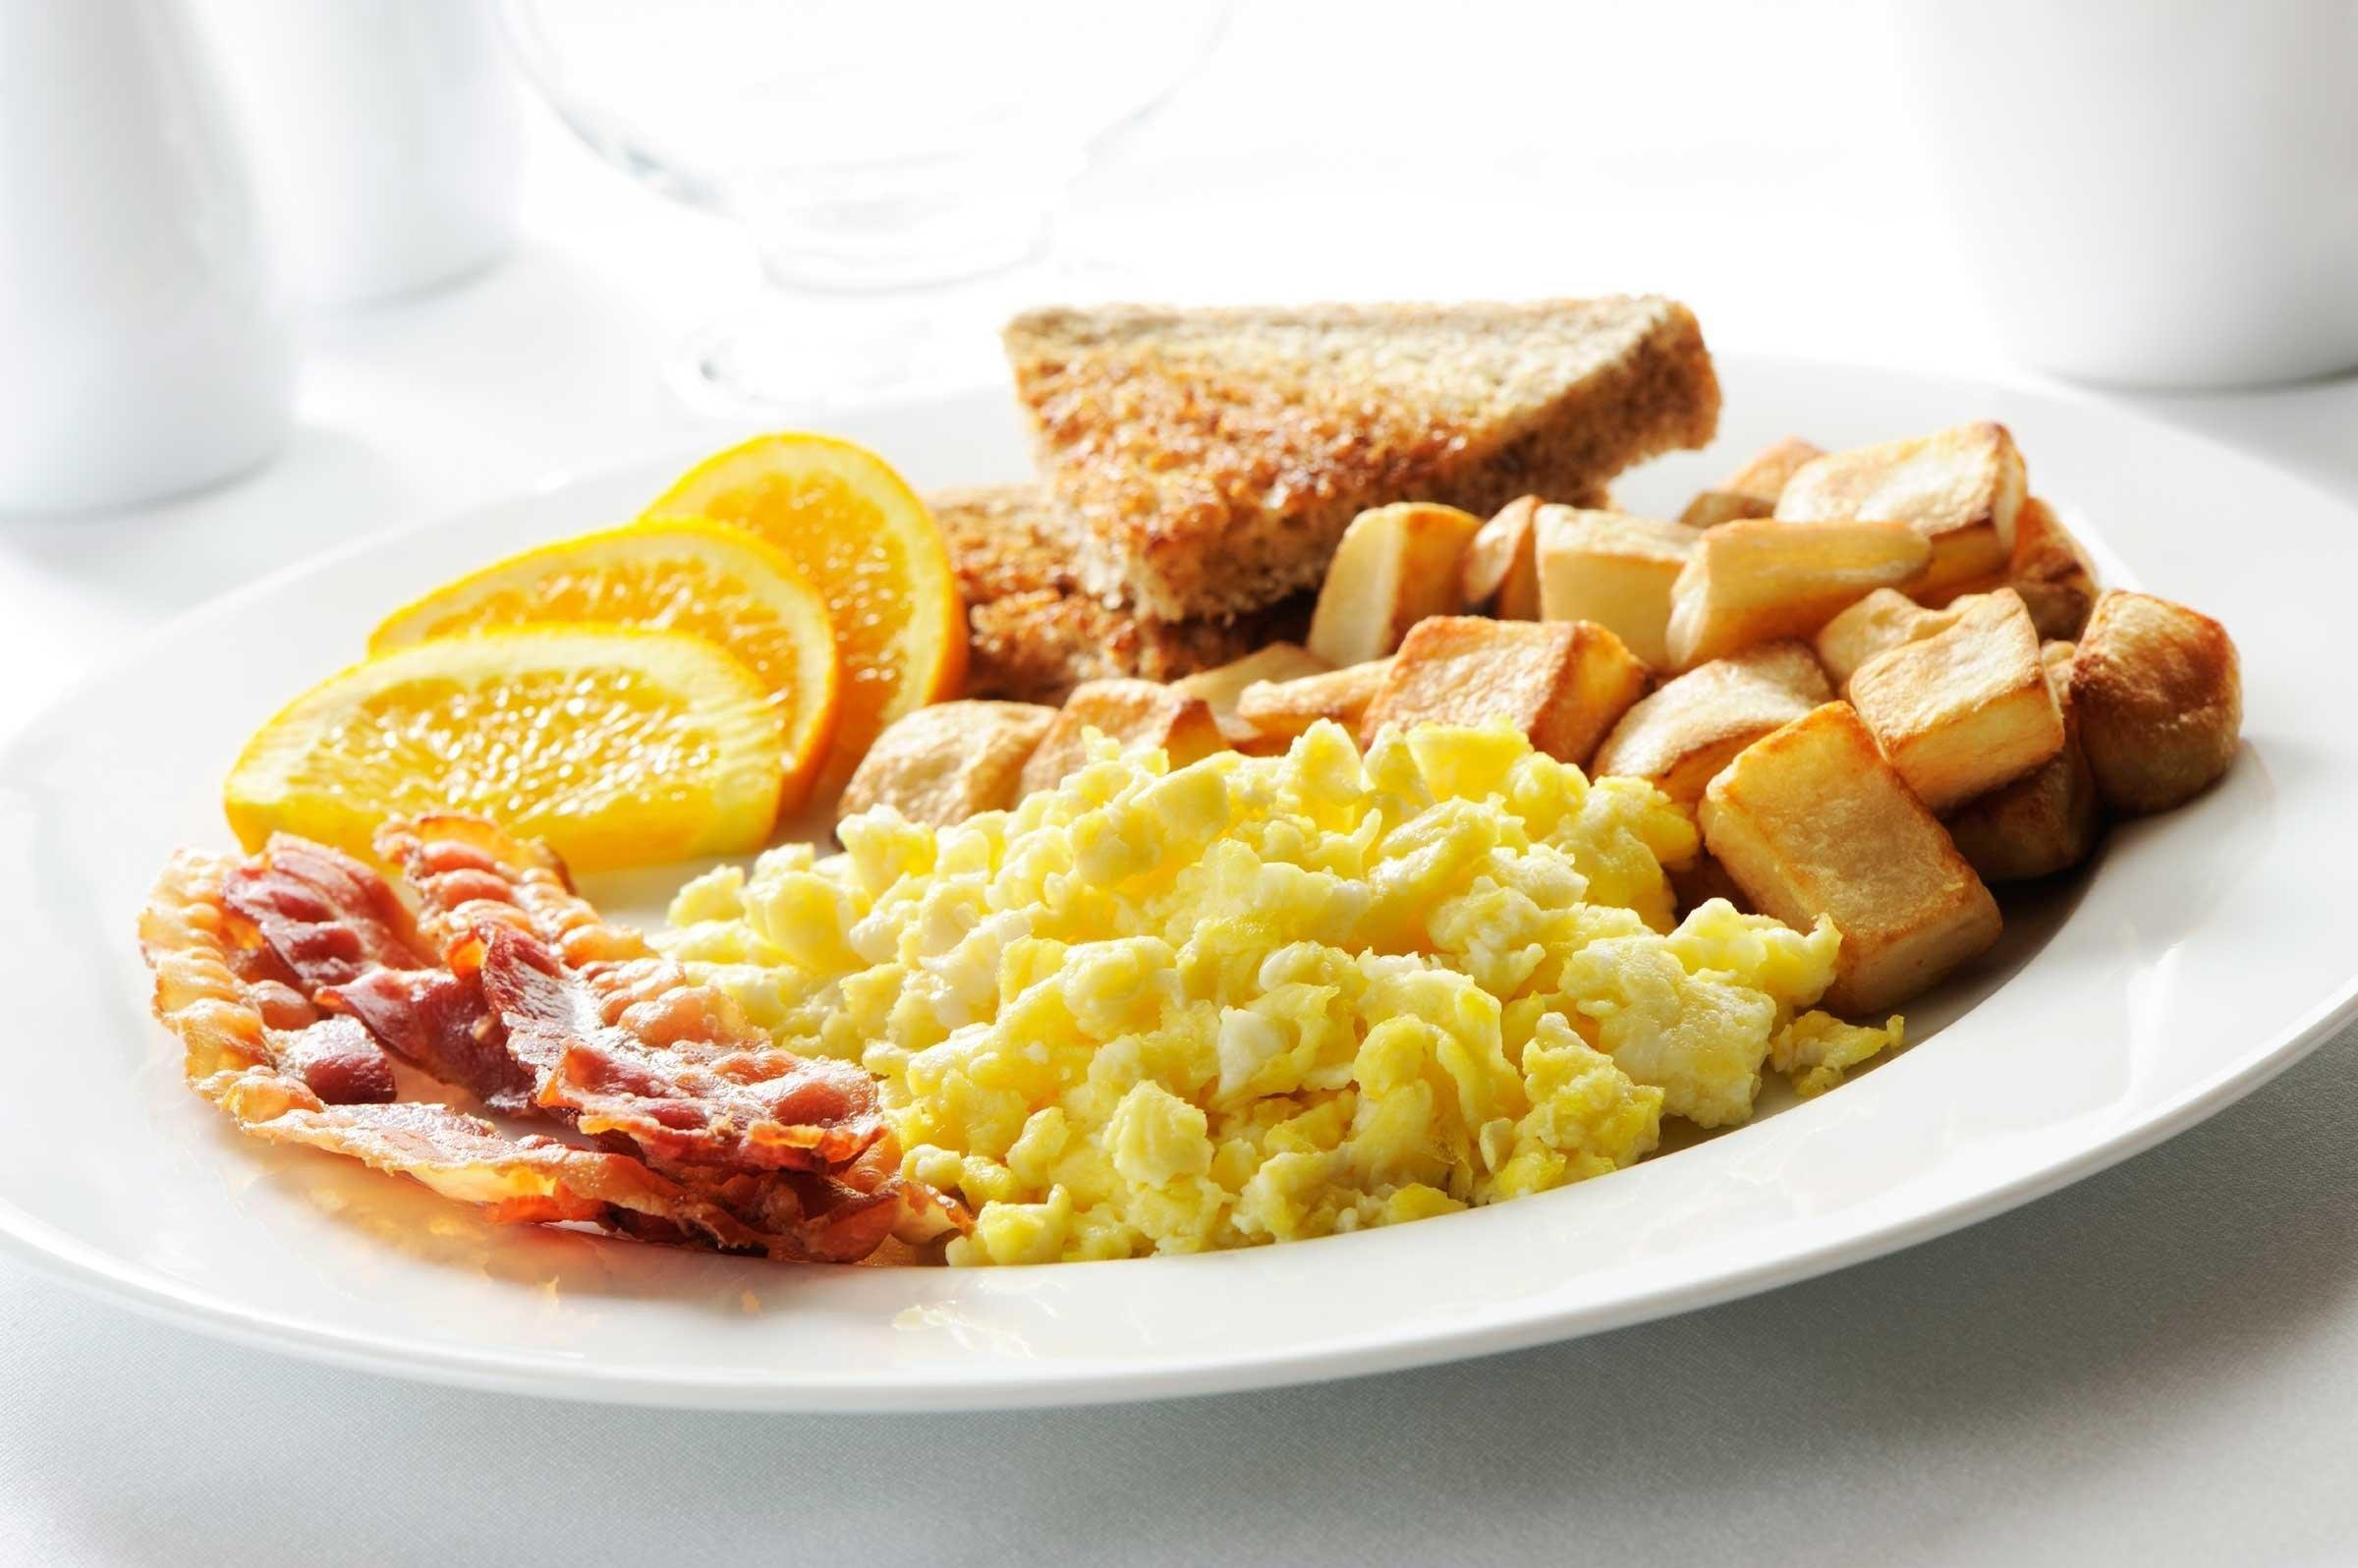 12 Breakfast Rules For Diabetes